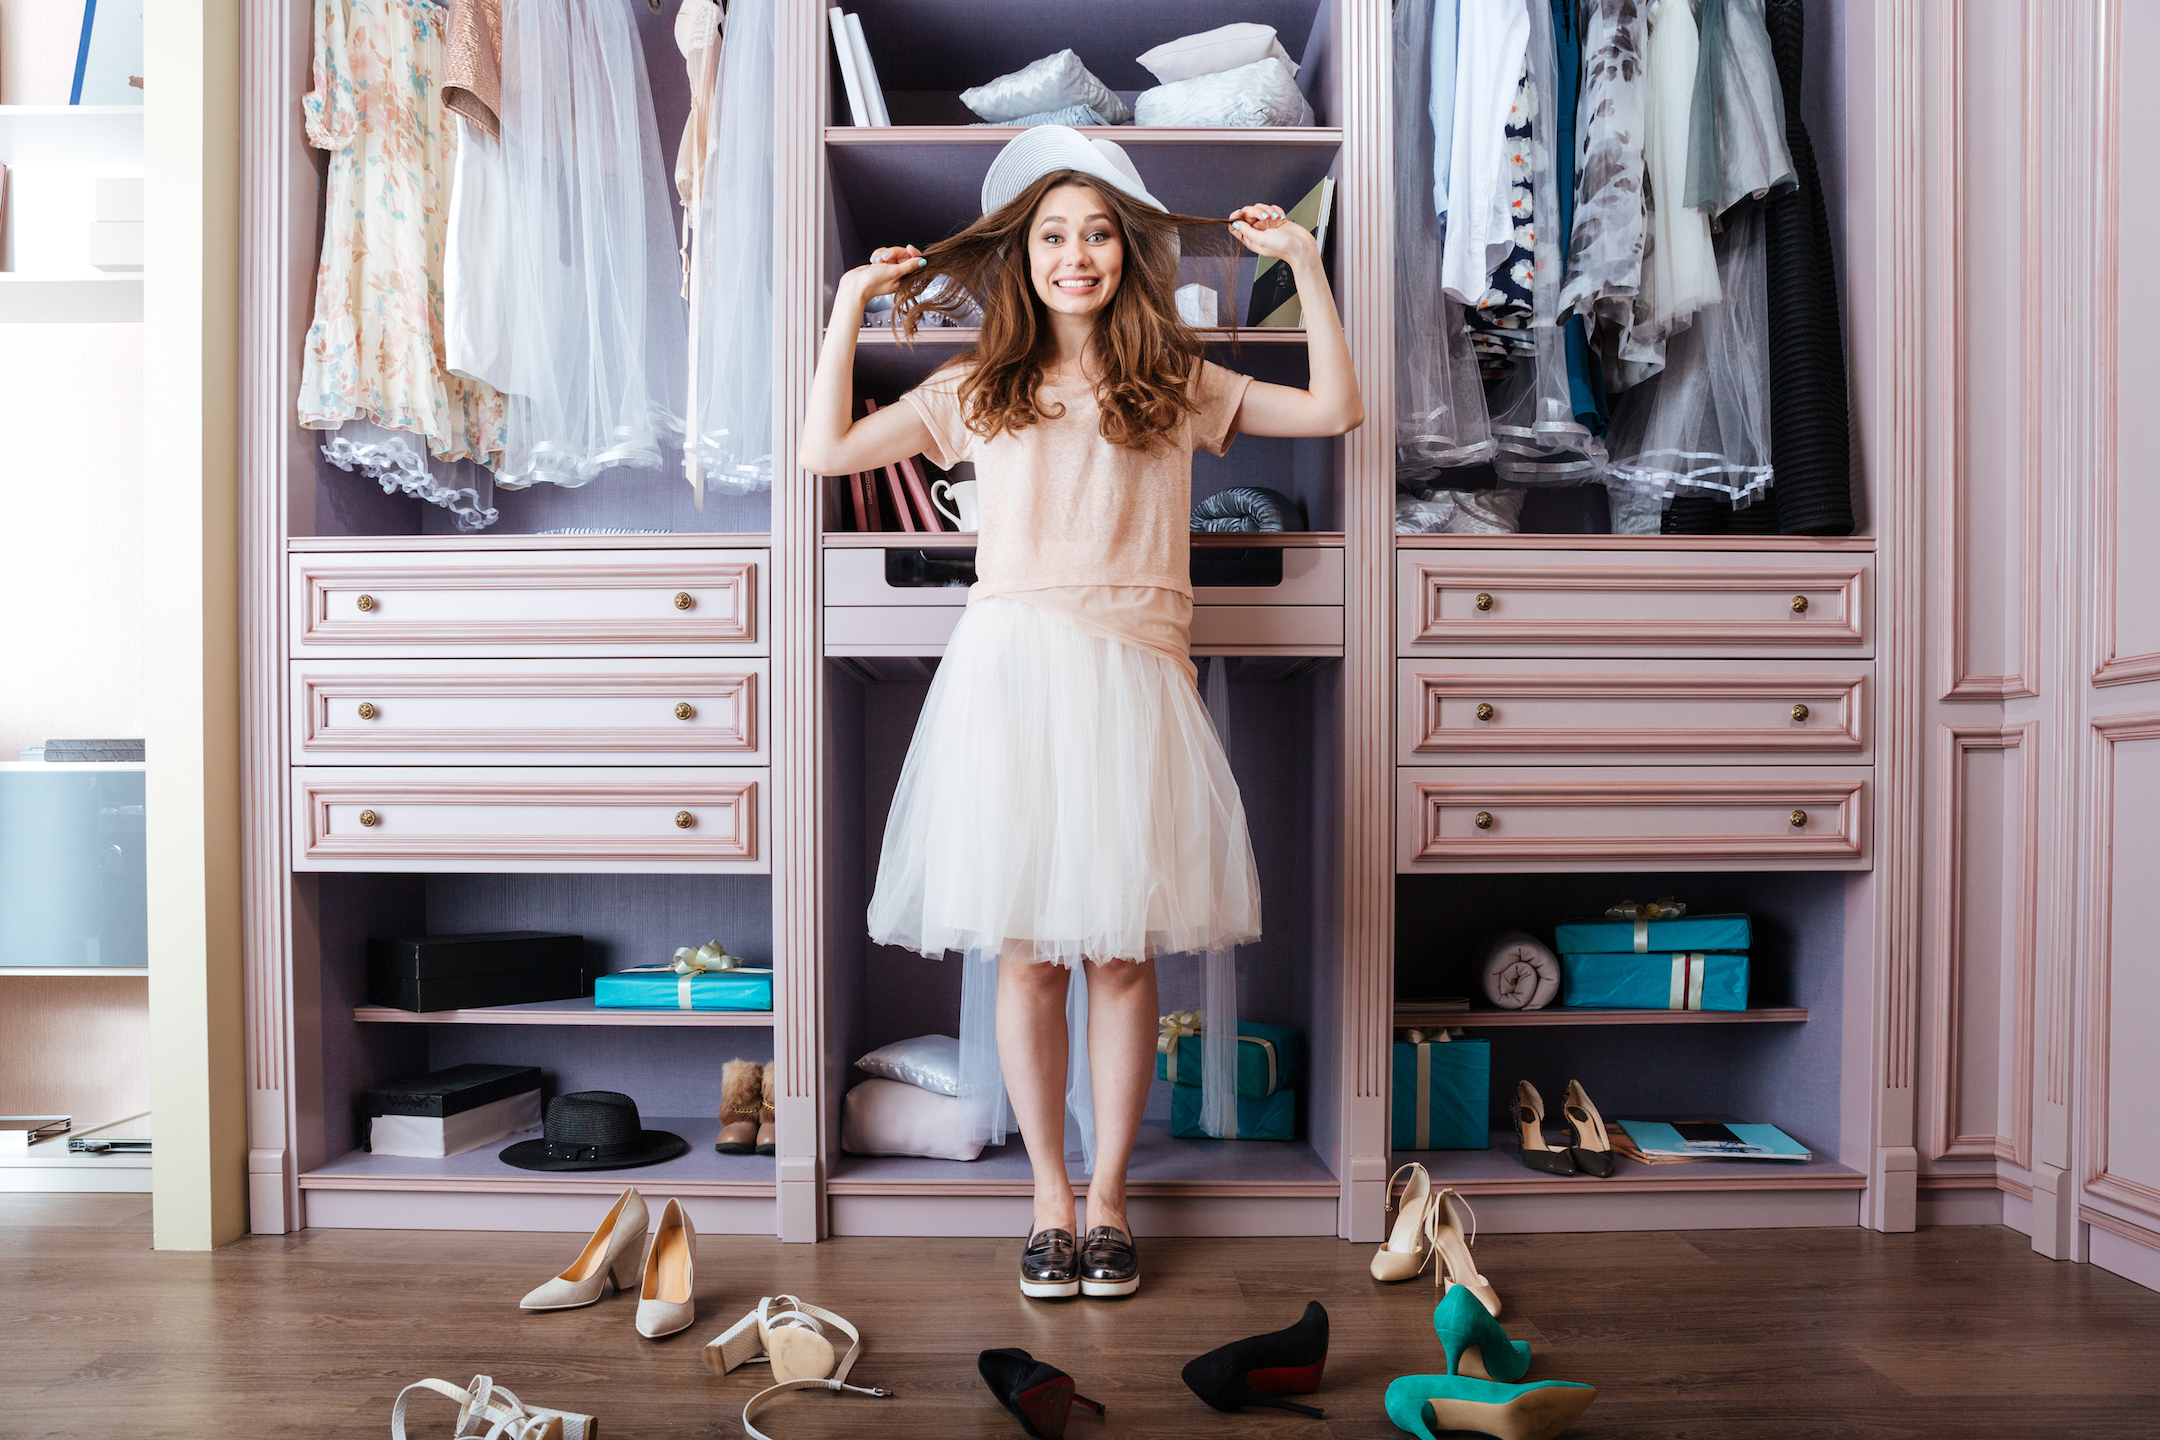 Girl standing in front of wardrobe deciding which shoes to wear